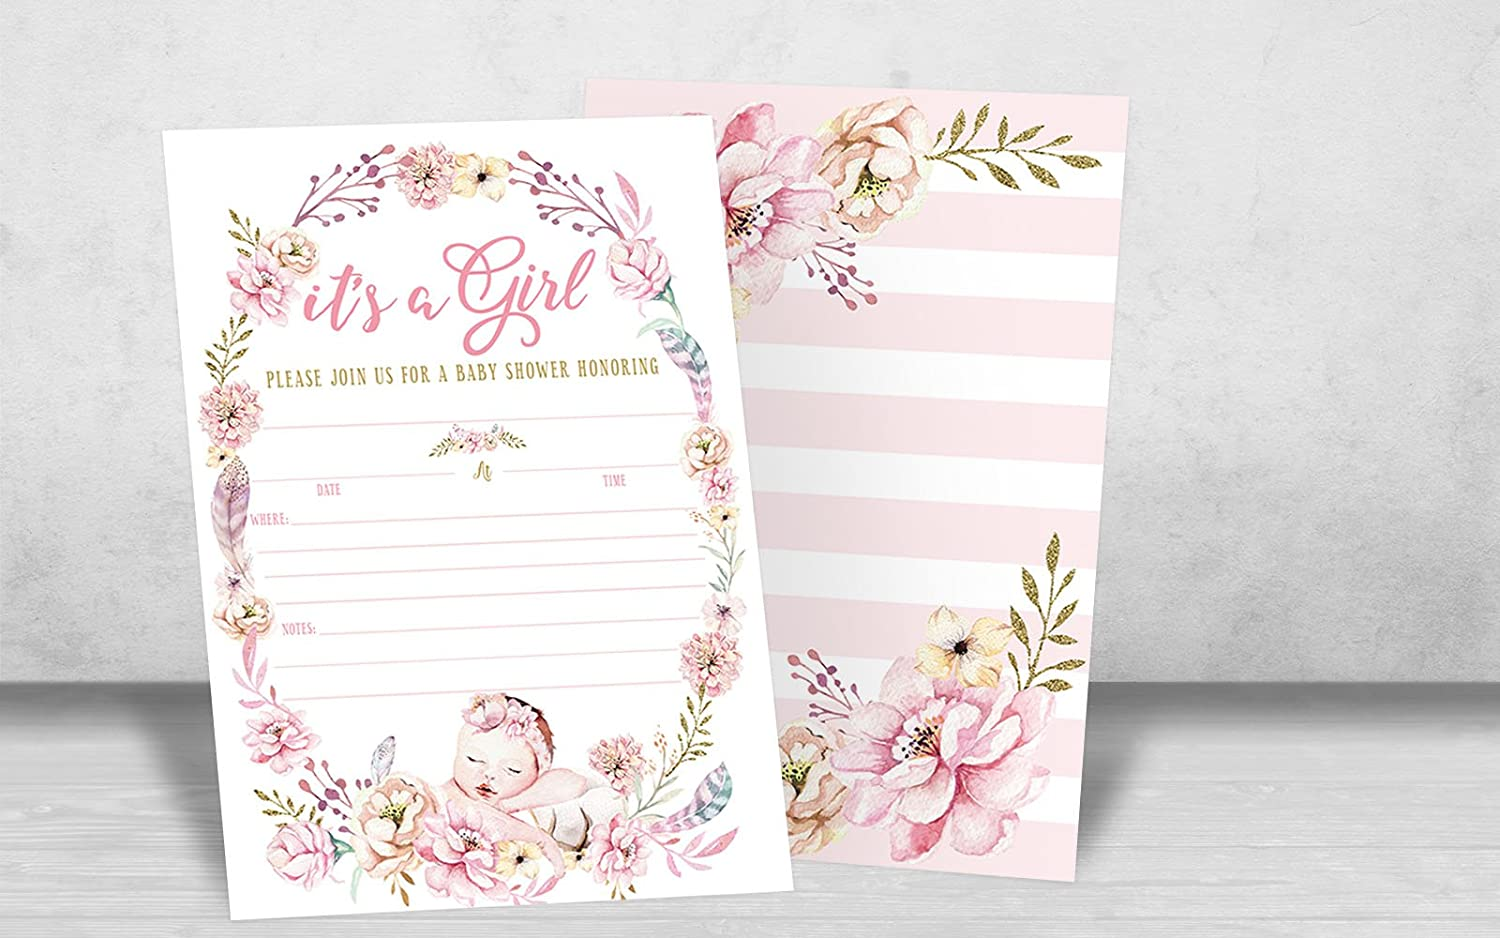 20 Fill in Invitations and Envelopes Girl Baby Shower Invitations Girl Baby Shower Invites Its a Girl Baby Shower Invitations Floral Boho Butterfly Whimsical